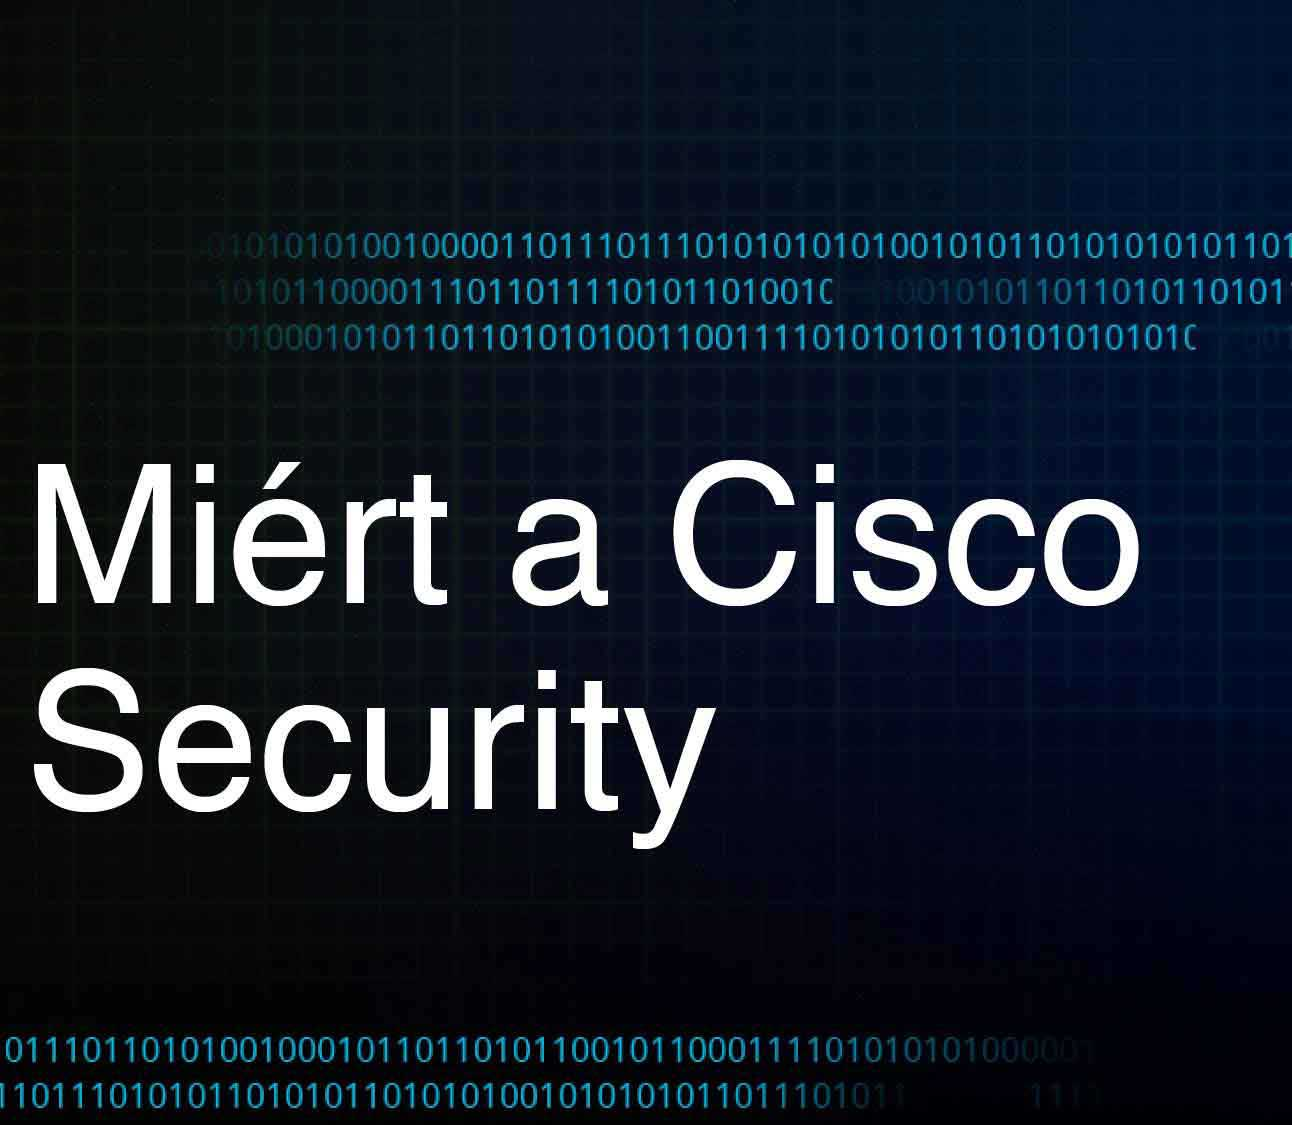 Miért a Cisco Security Featured Image